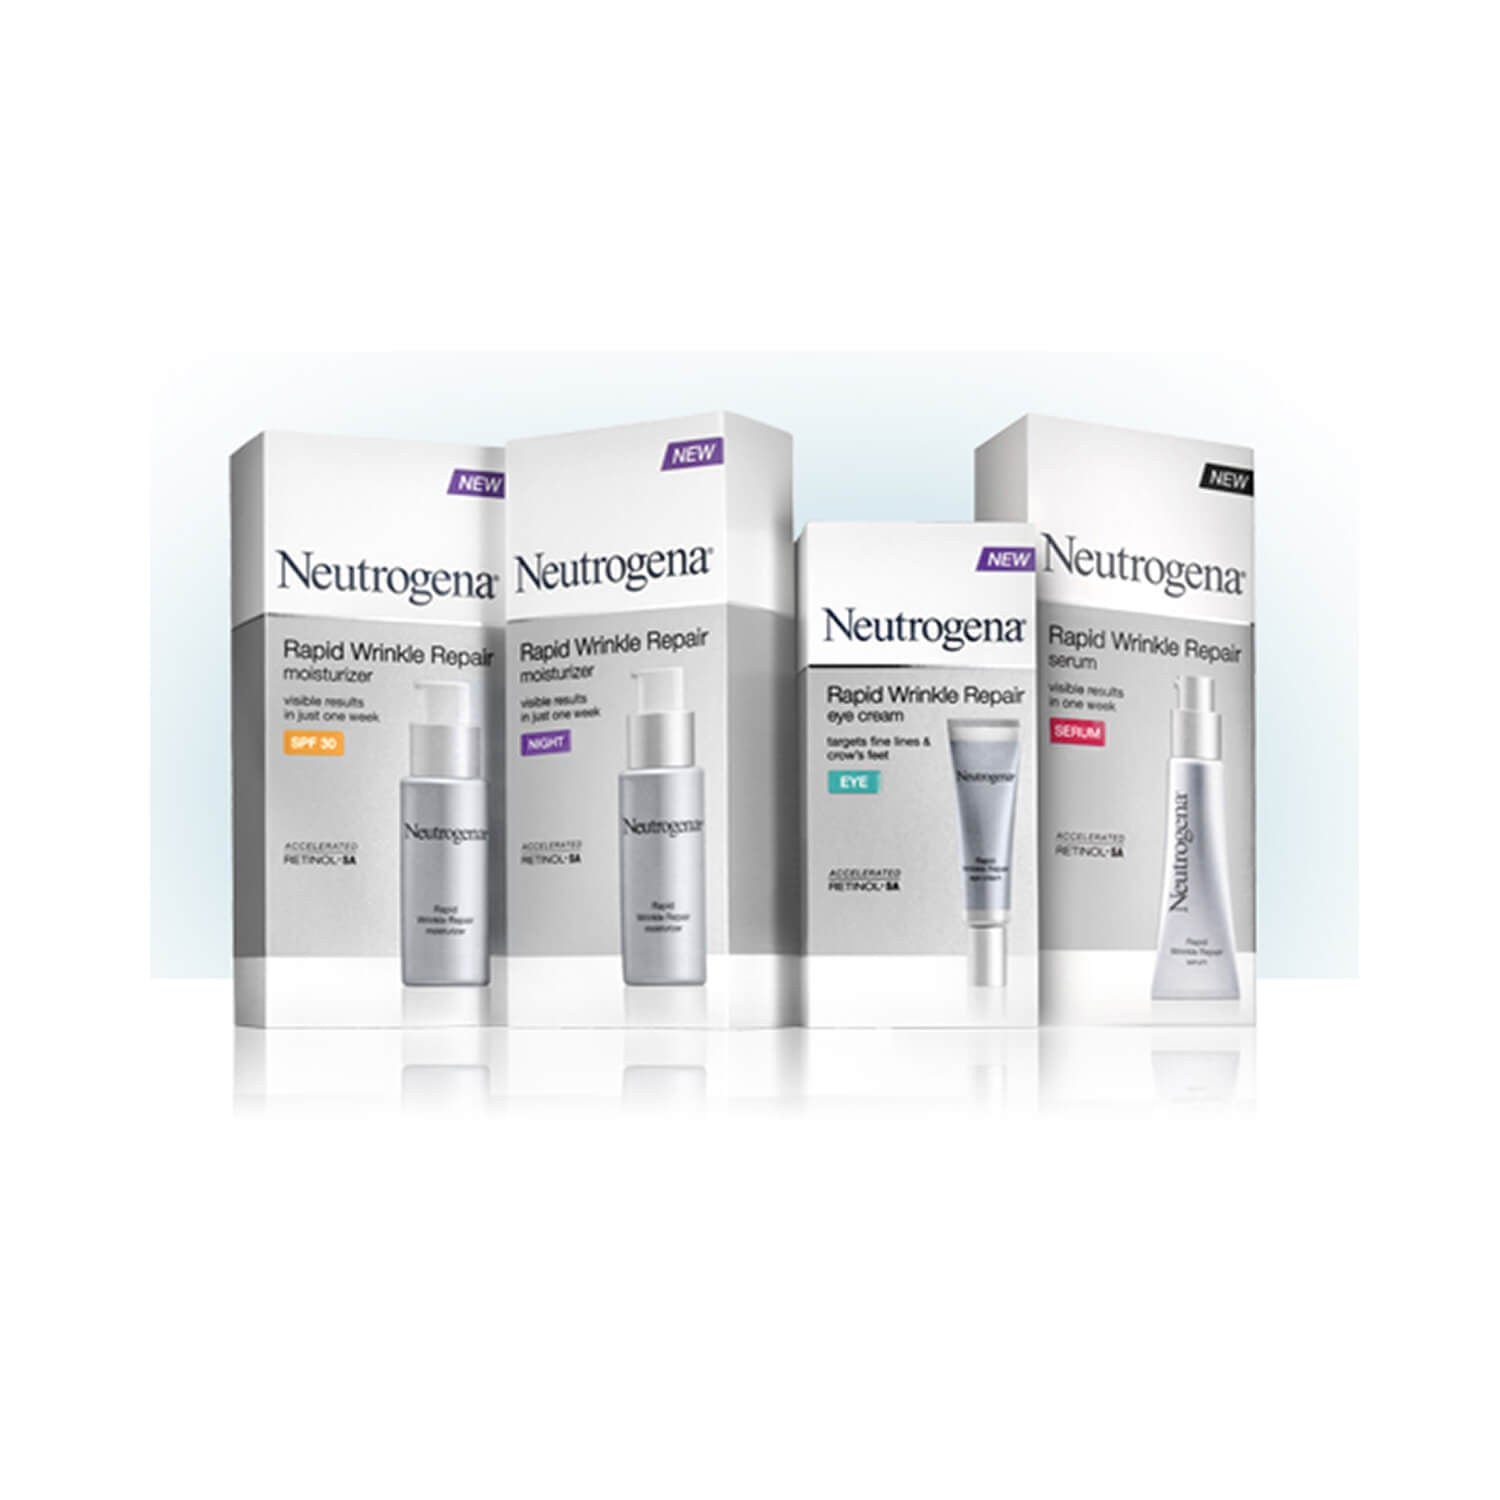 Neutrogena Rapid Wrinkle Repair Set of 4 Products